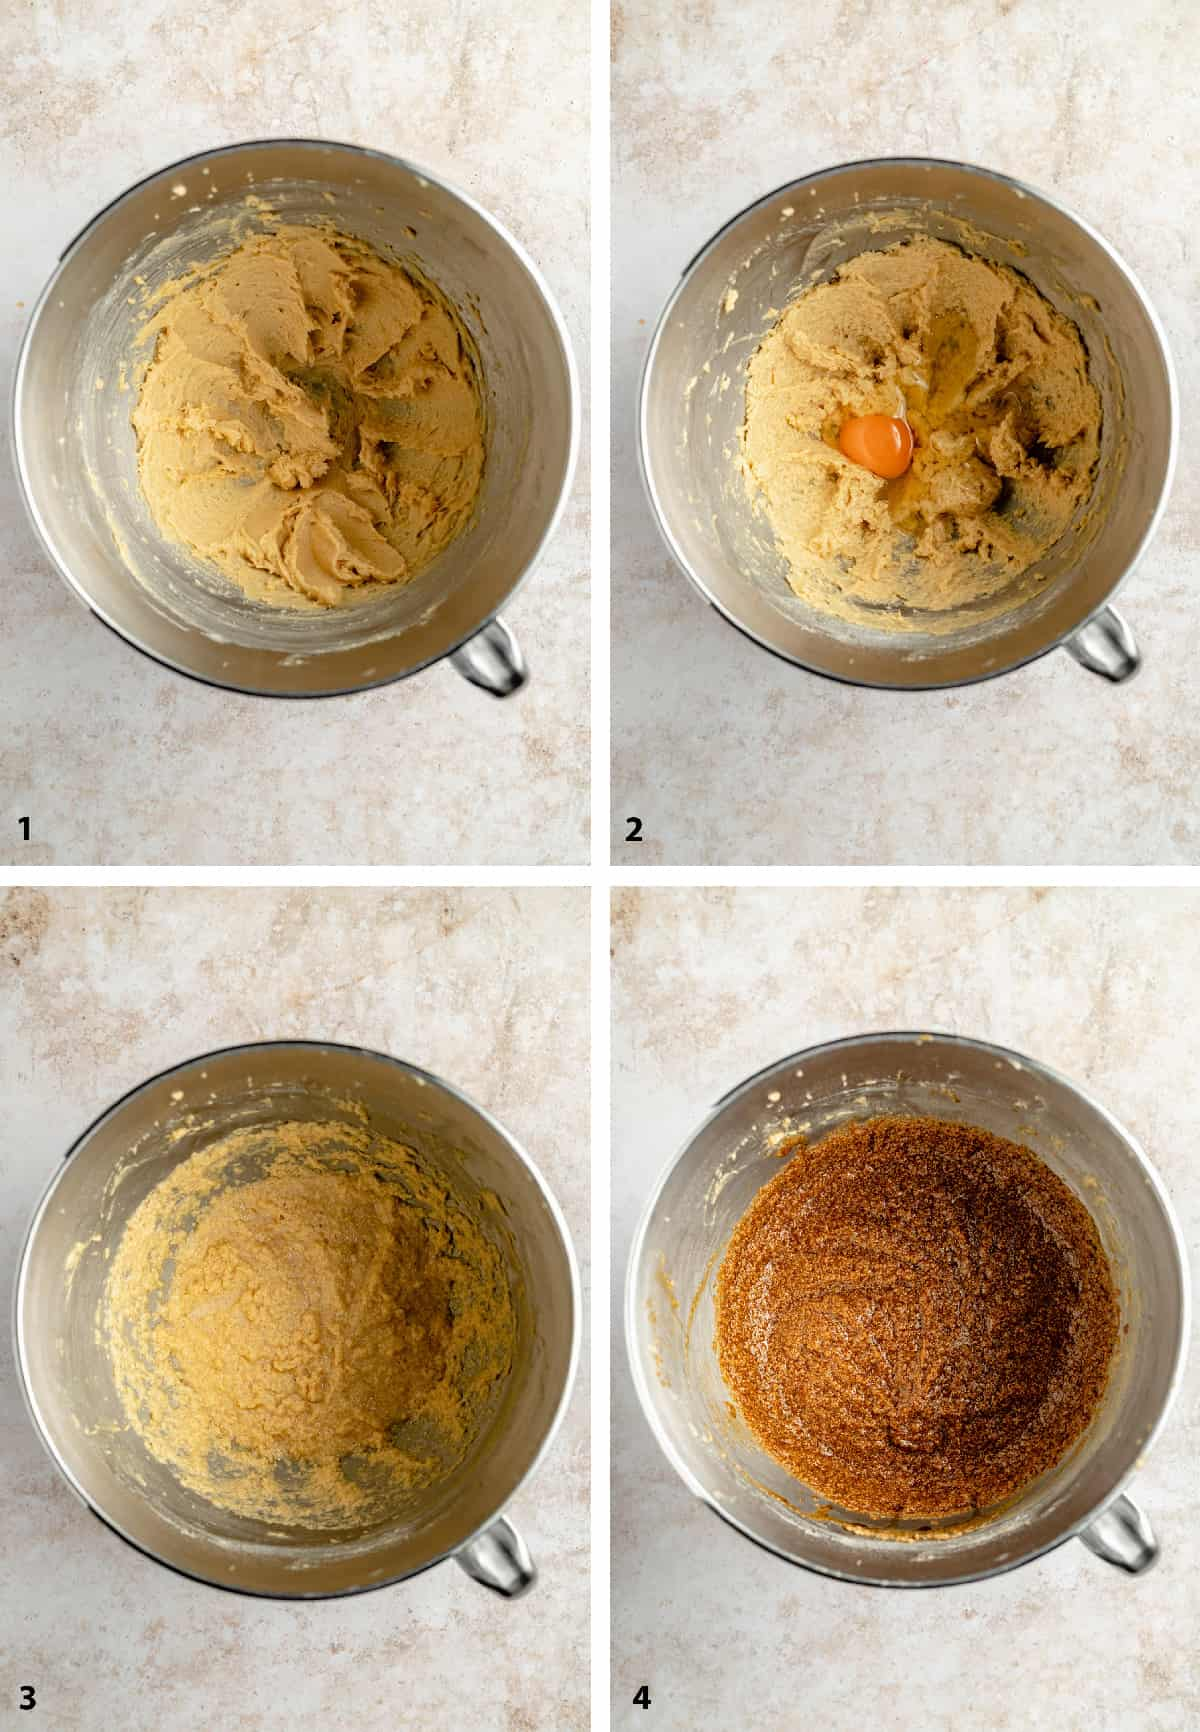 8 step process collage of making the pumpkin gingerbread showing the mixture at different stages of process